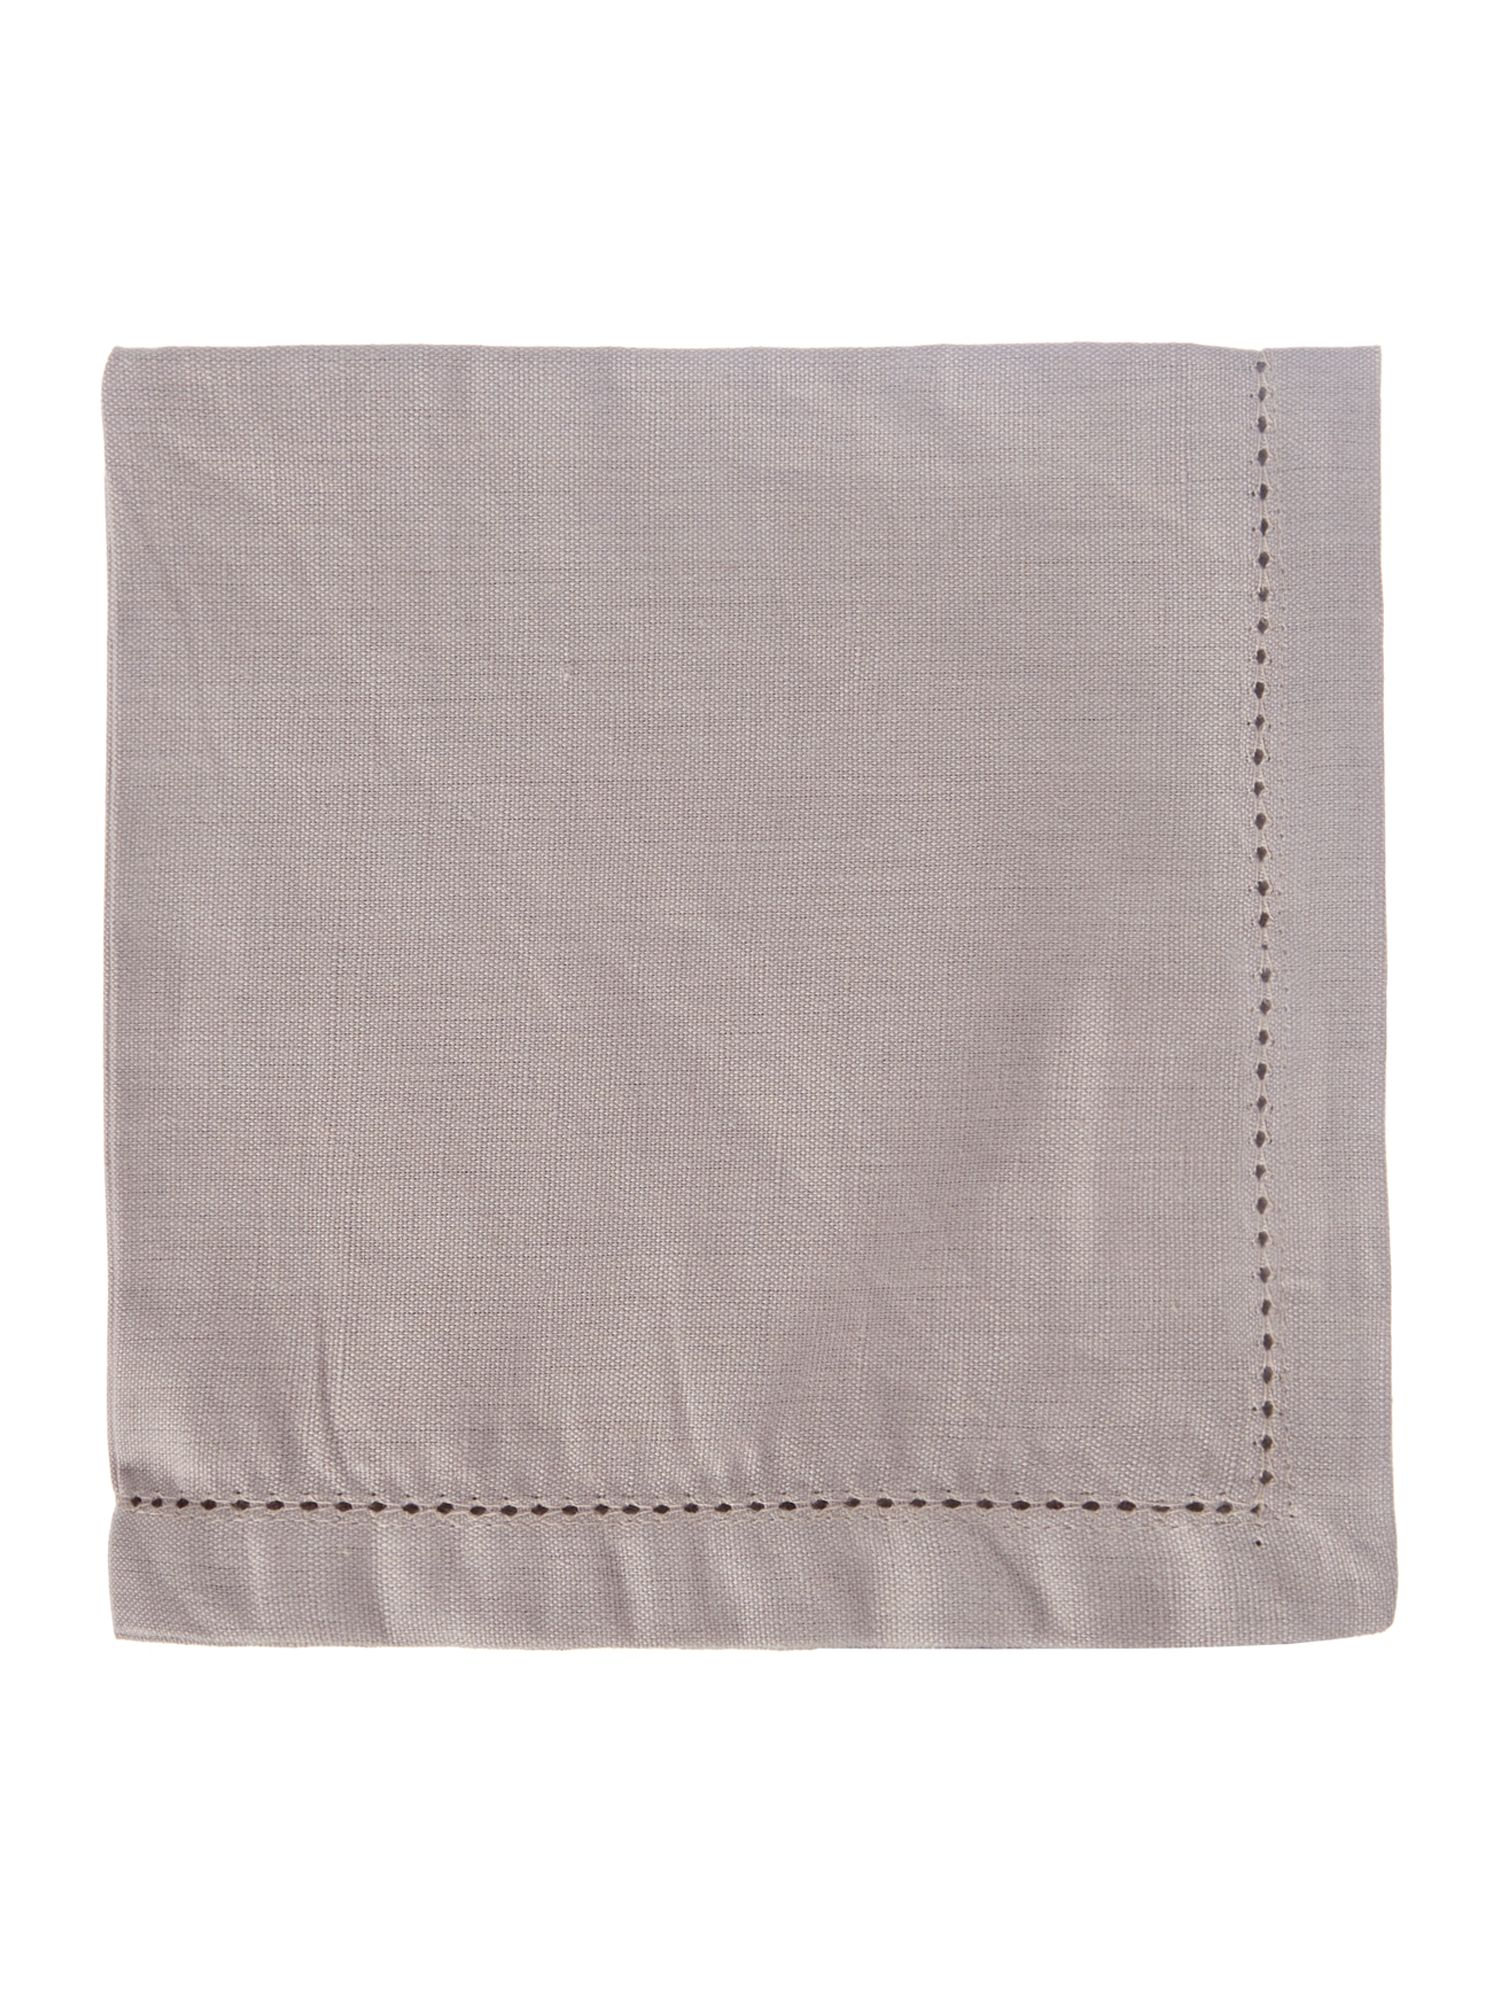 Lilac Washed Cotton Tablelinen Range